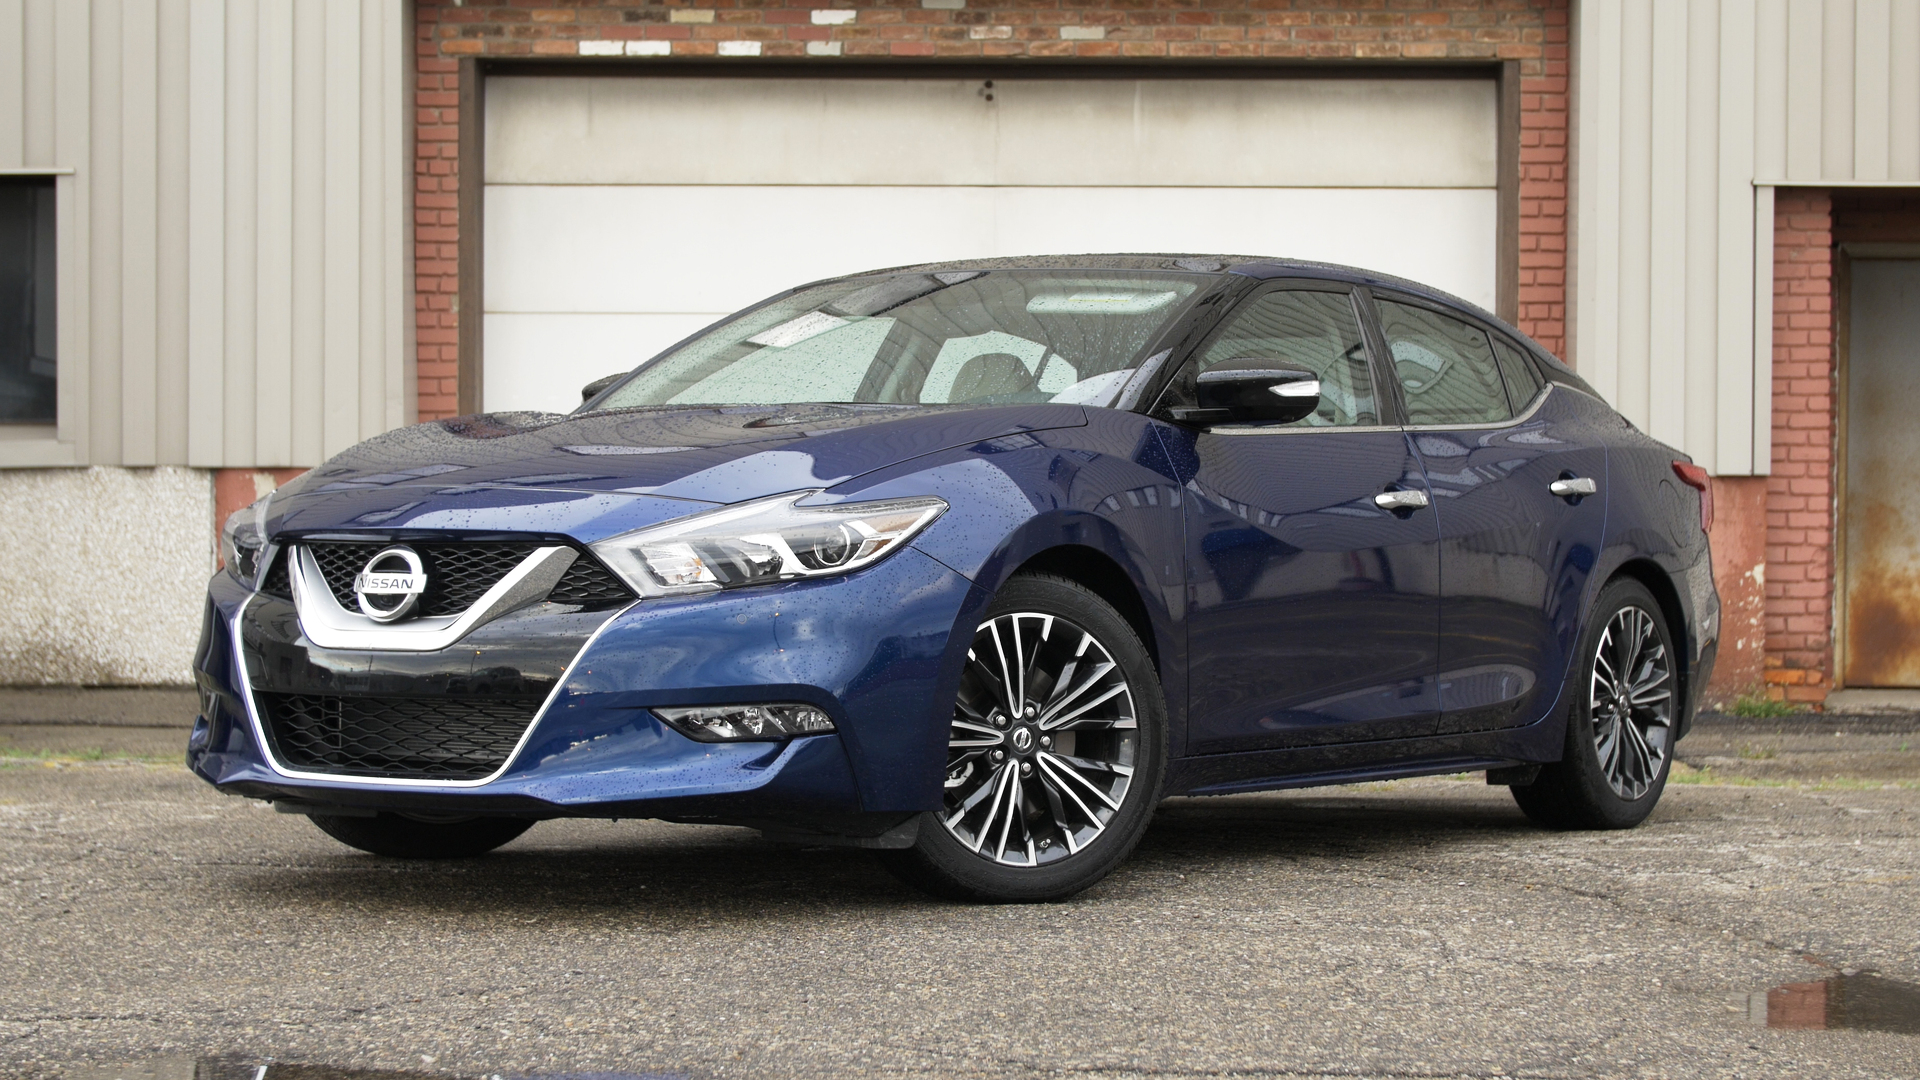 Best Car Wax To Use On Nissan Maxima